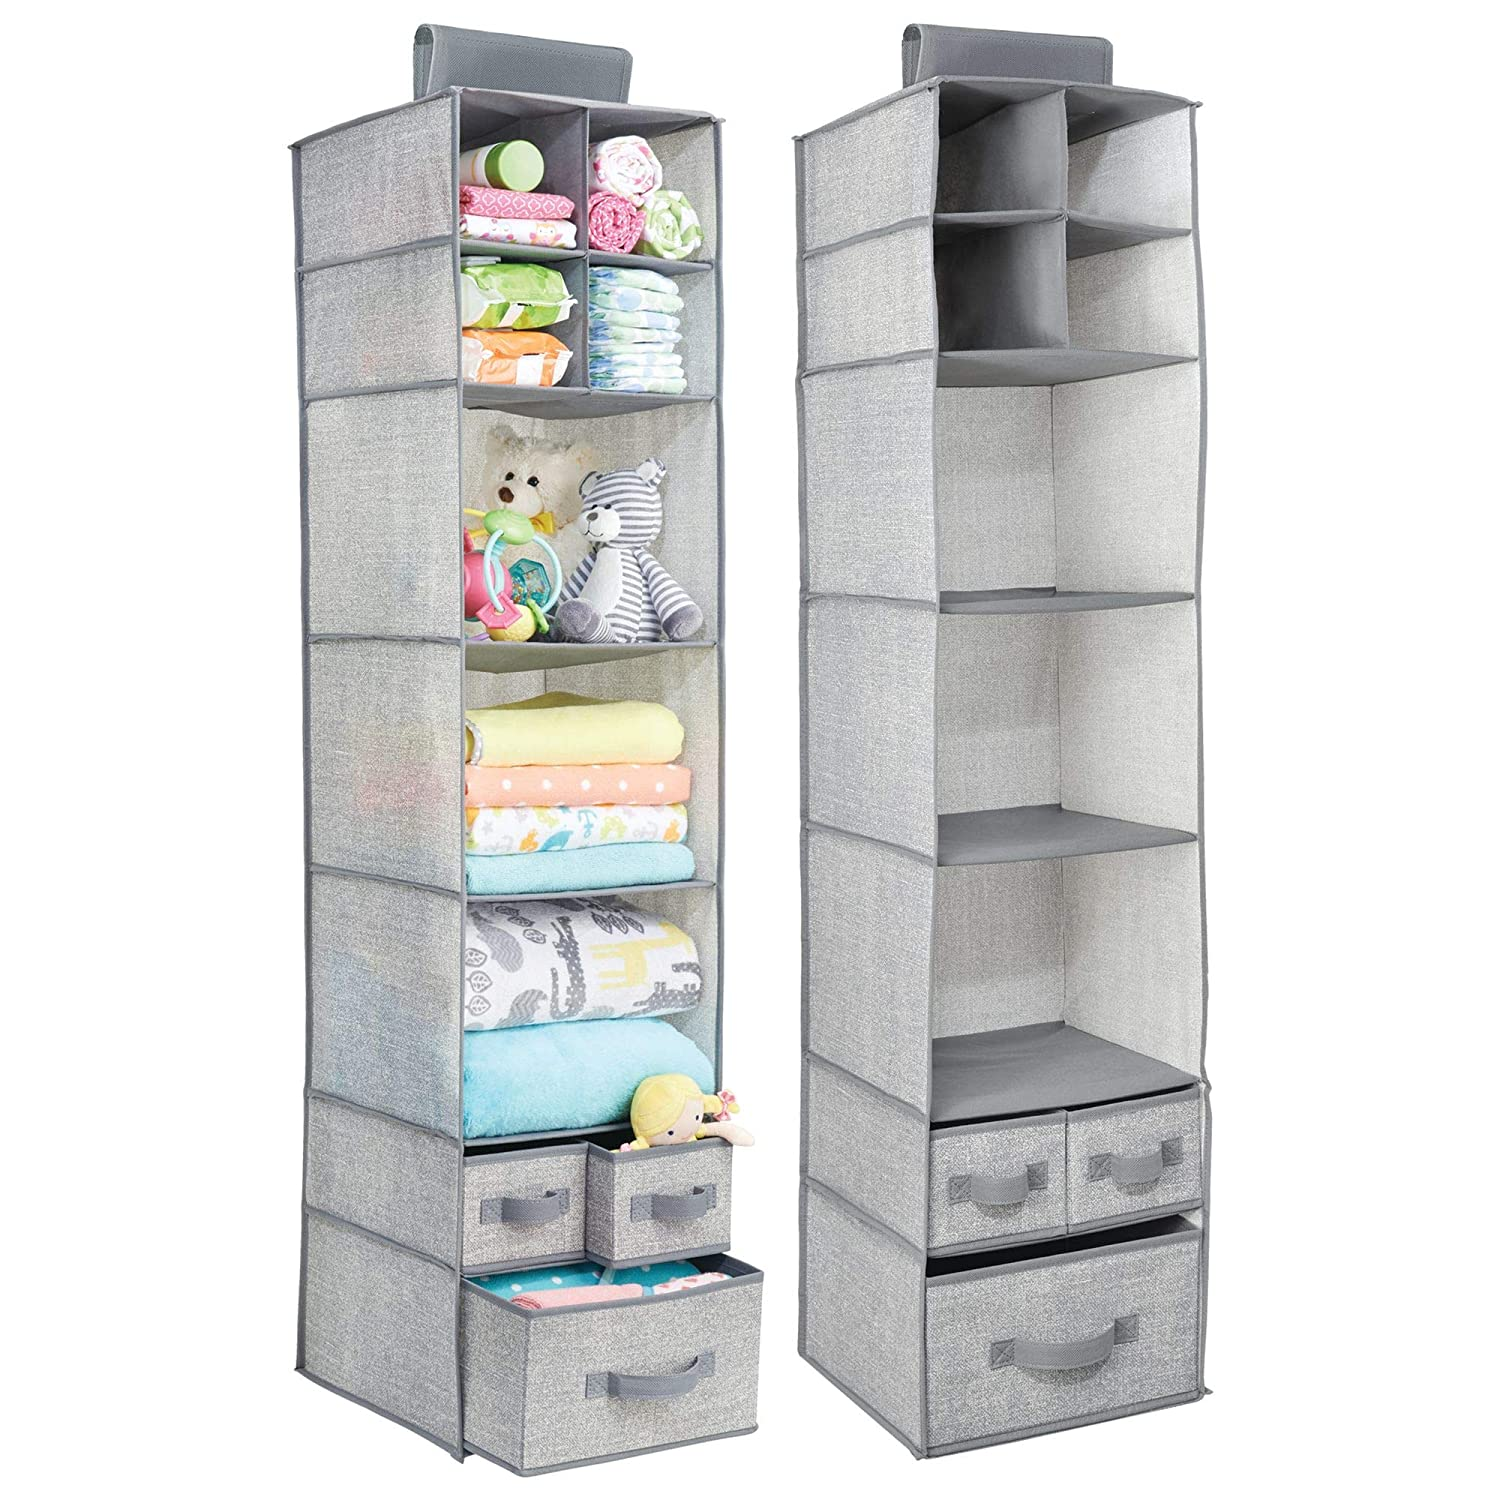 mDesign Soft Fabric Over Closet Rod Hanging Storage Organizer with 7 Shelves and 3 Removable Drawers for Child/Baby Room or Nursery - Textured Print - Gray MetroDecor 1451MDB